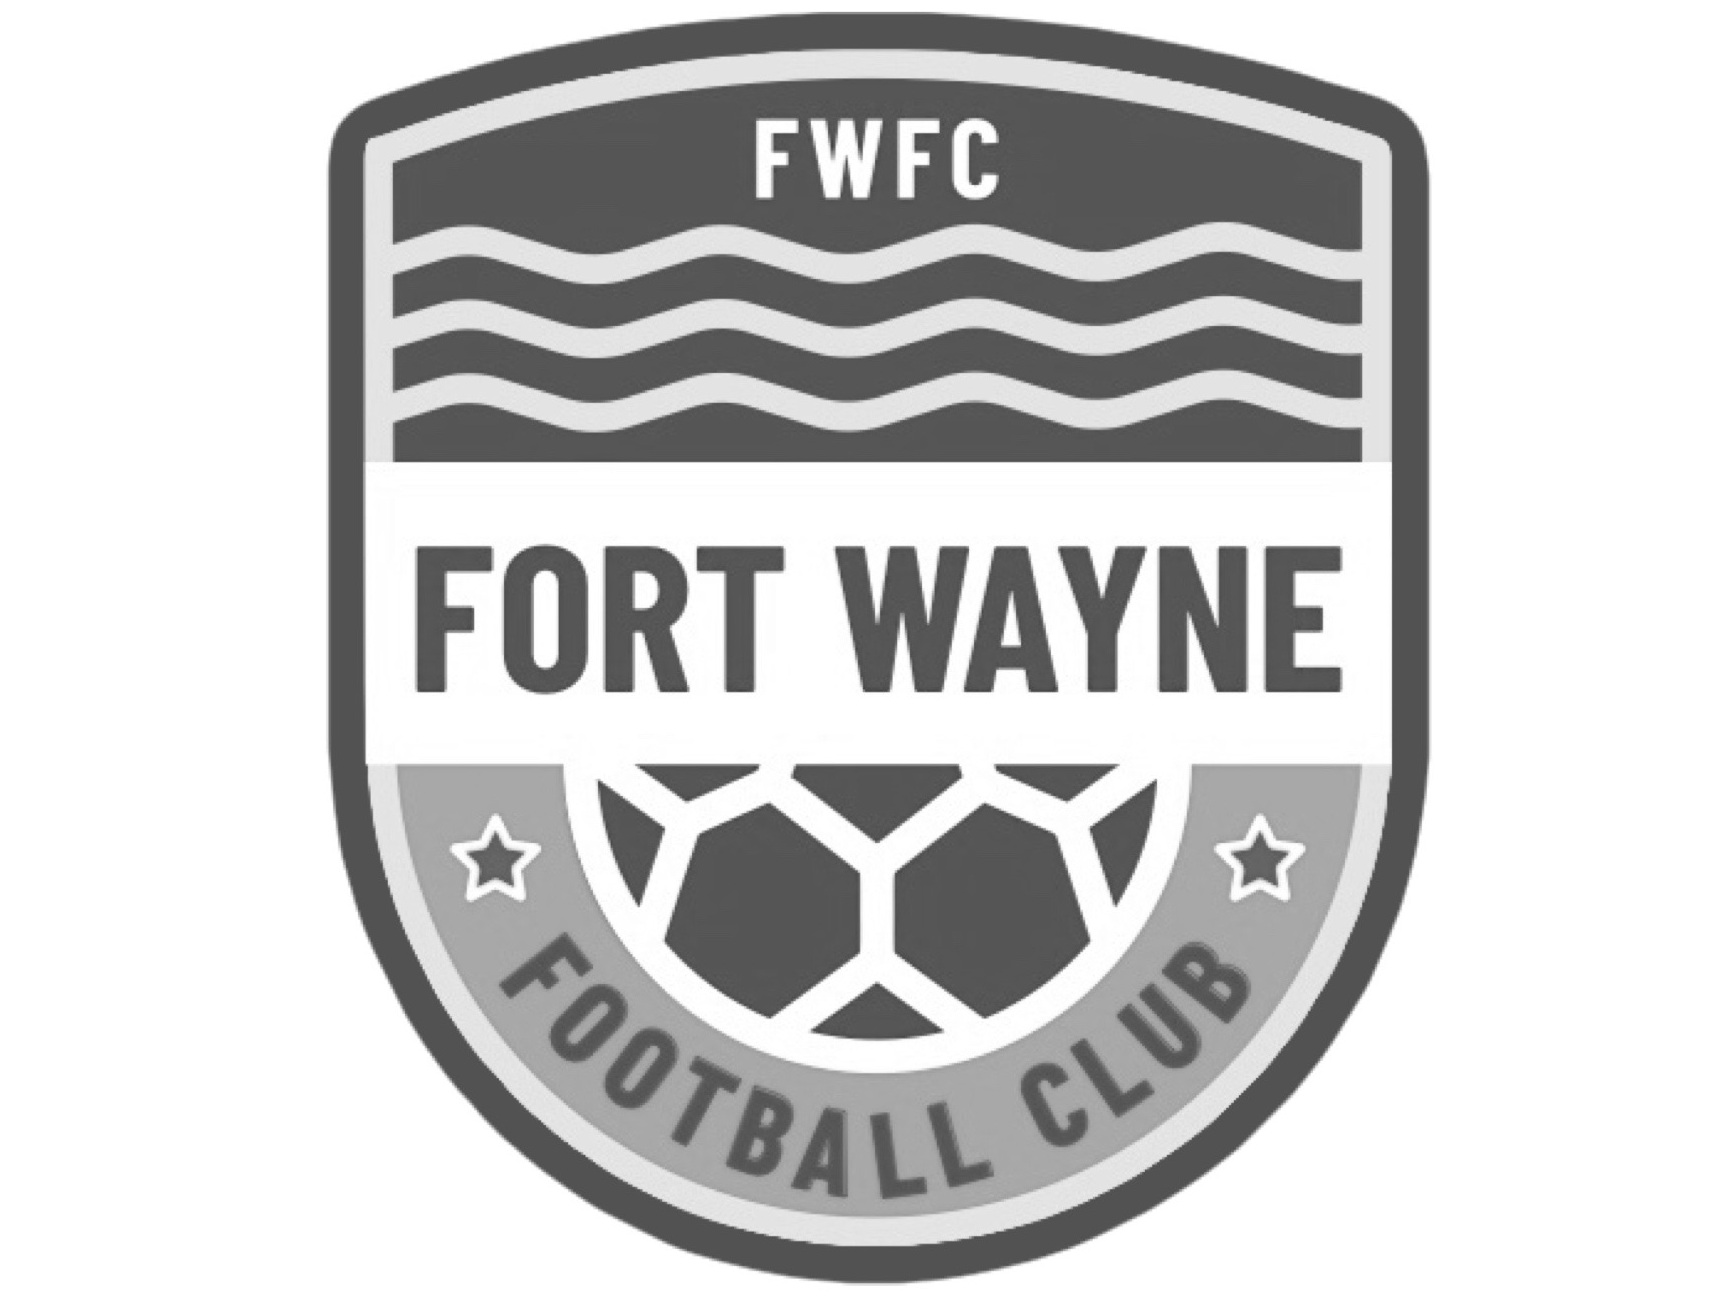 TBD - Broadcast and Streaming ManagerResponsible for broadcasting and streaming of home games on Fort Wayne FC YouTube Channel.